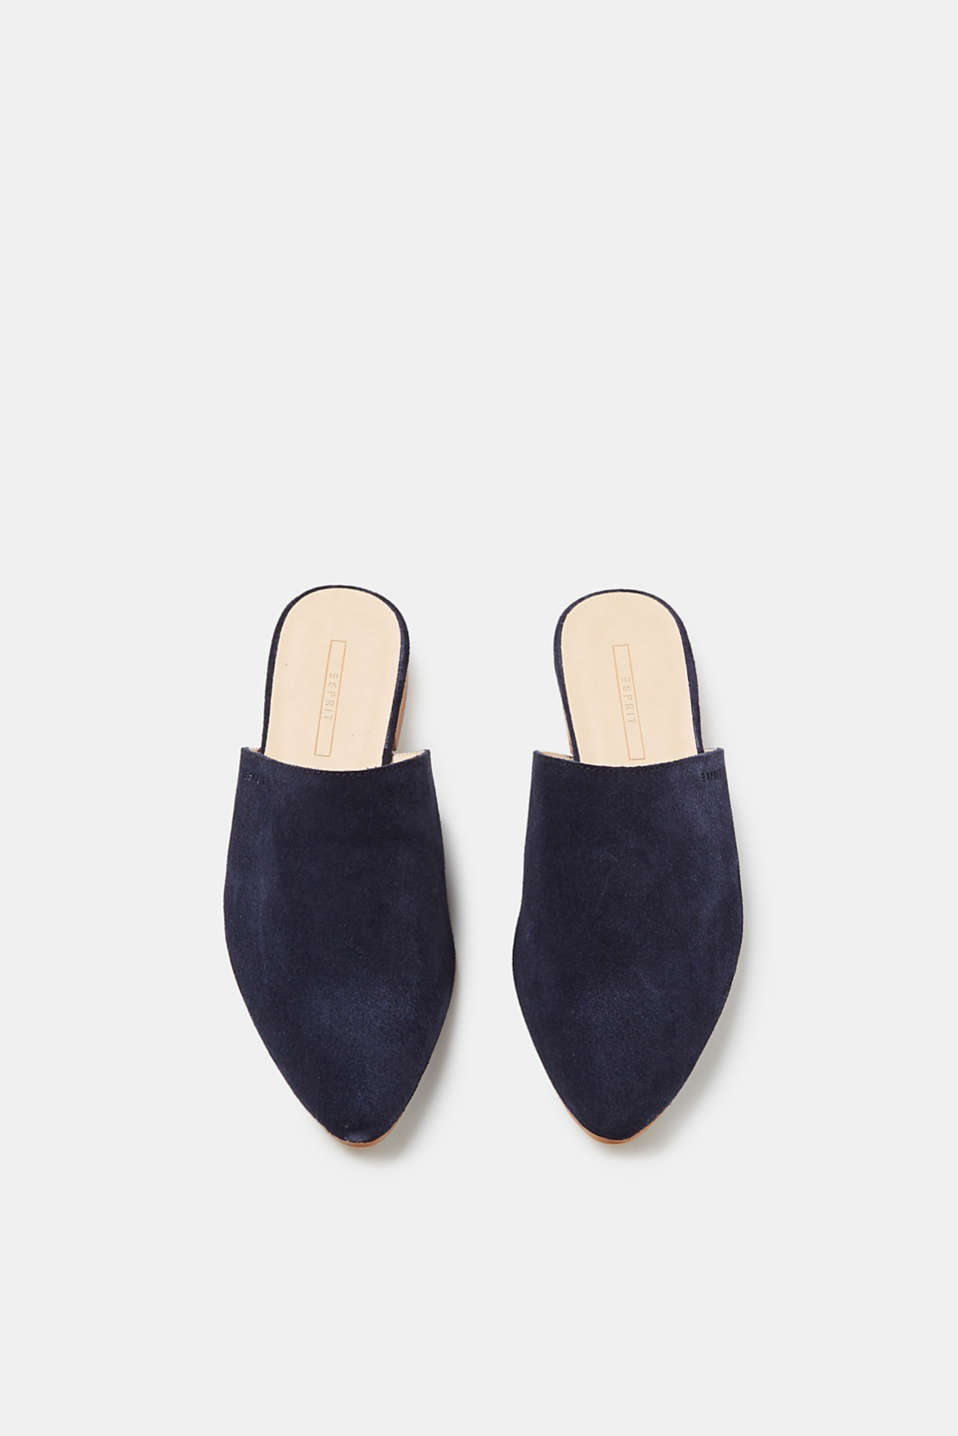 Suede slip-ons with a pointed toe